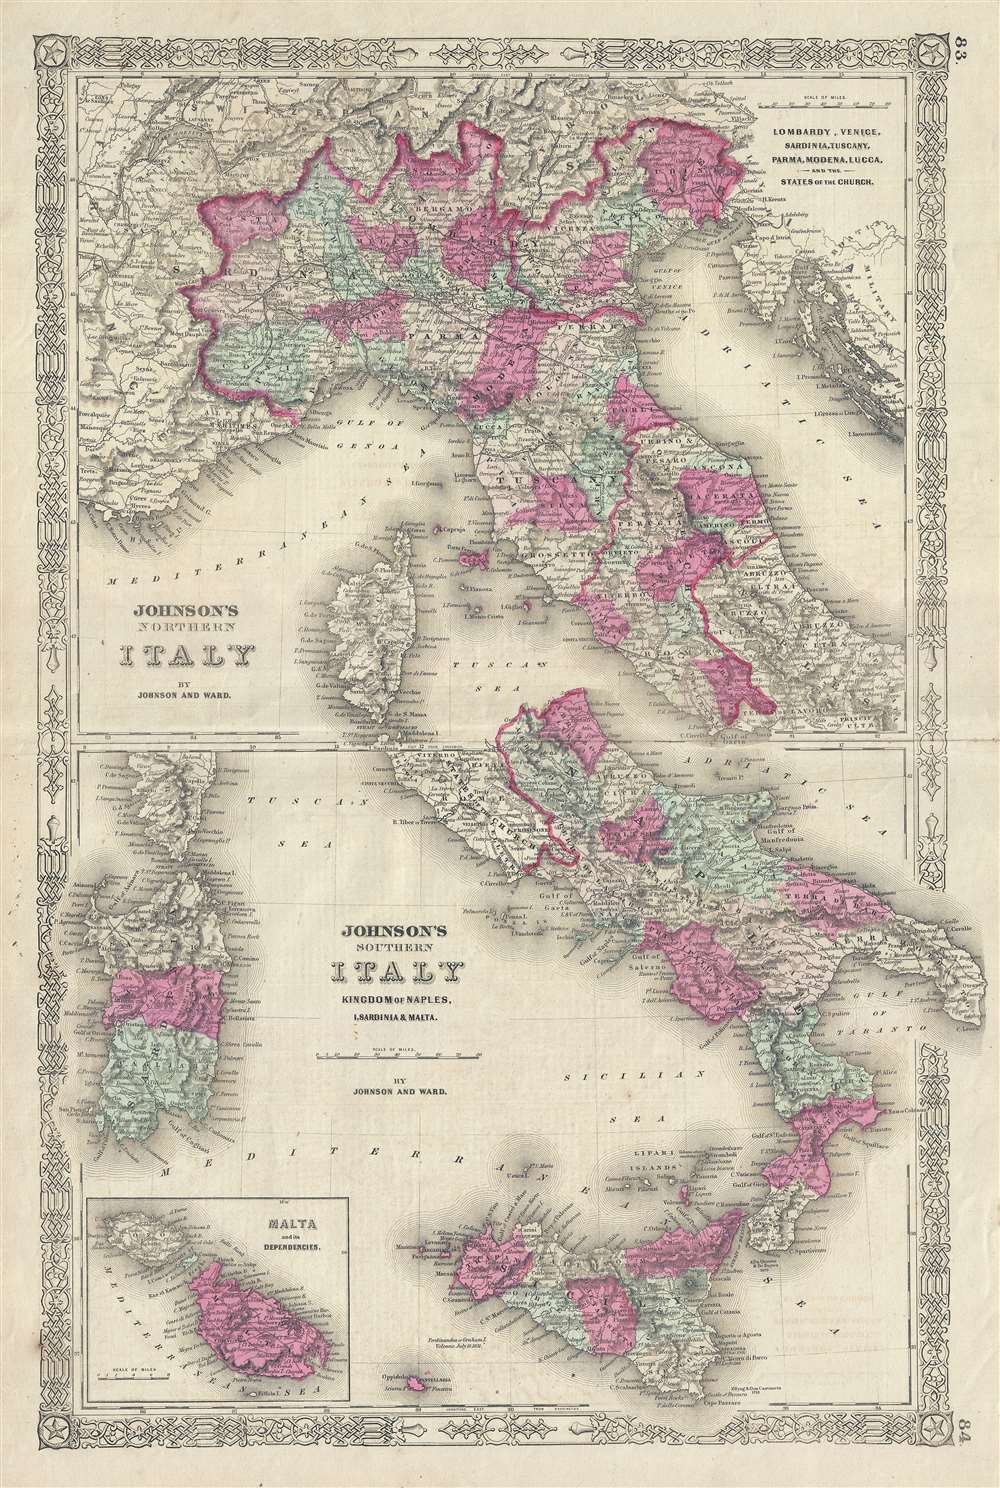 Johnson's Northern Italy.  Johnson's Southern Italy Kingdom of Naples, I. Sardinia & Malta.